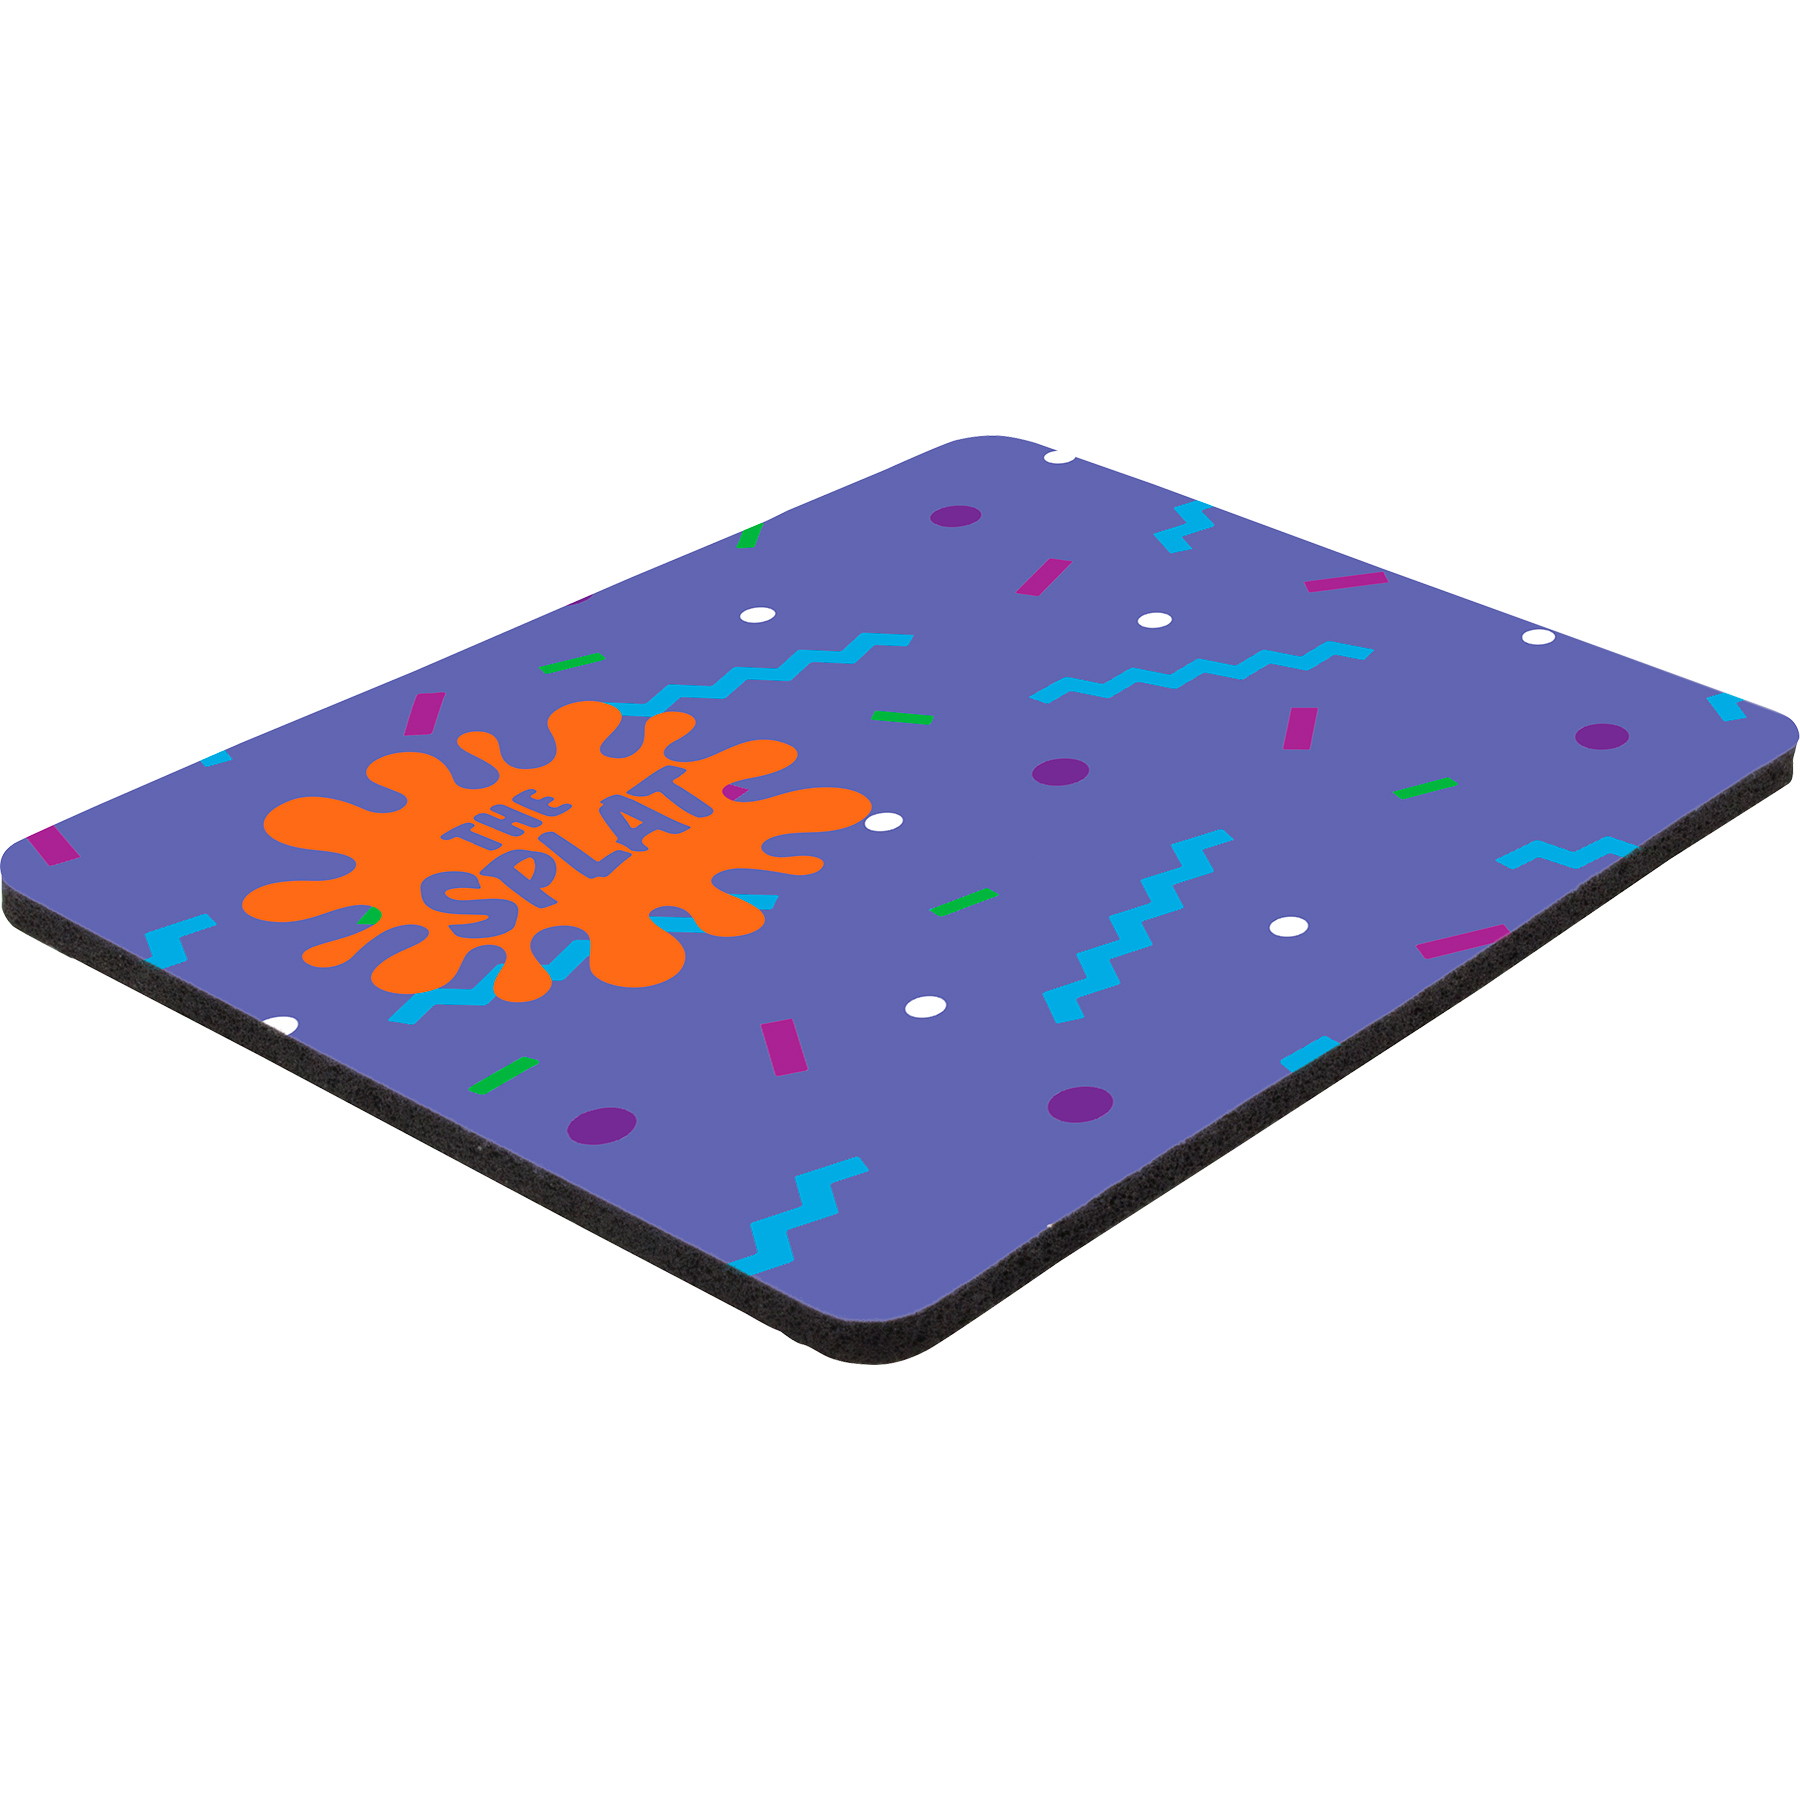 "6"" x 8"" x 1/8"" Full Color Hard Mouse Pad"